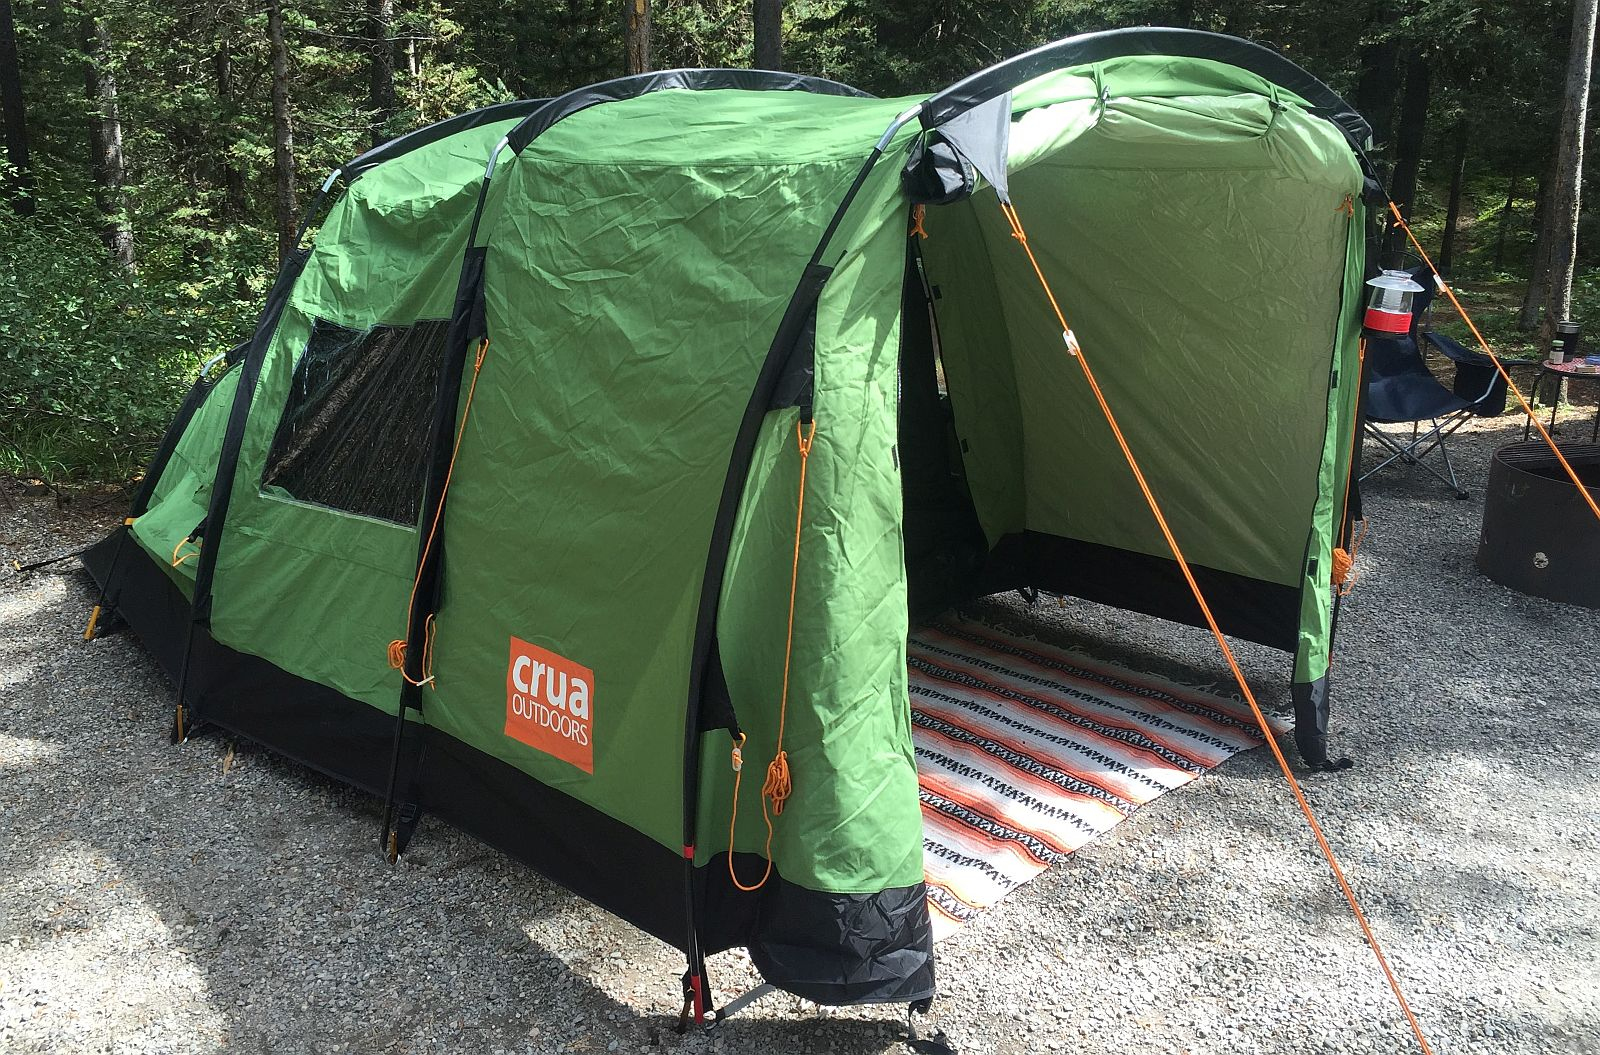 ... her butt off in your crappy tent or you just want to get a better nightu0027s rest c&ing without having to haul a trailer take a look at the Crua Tri. & Crua Tri Insulated Tent Review | The Hunting Gear Guy